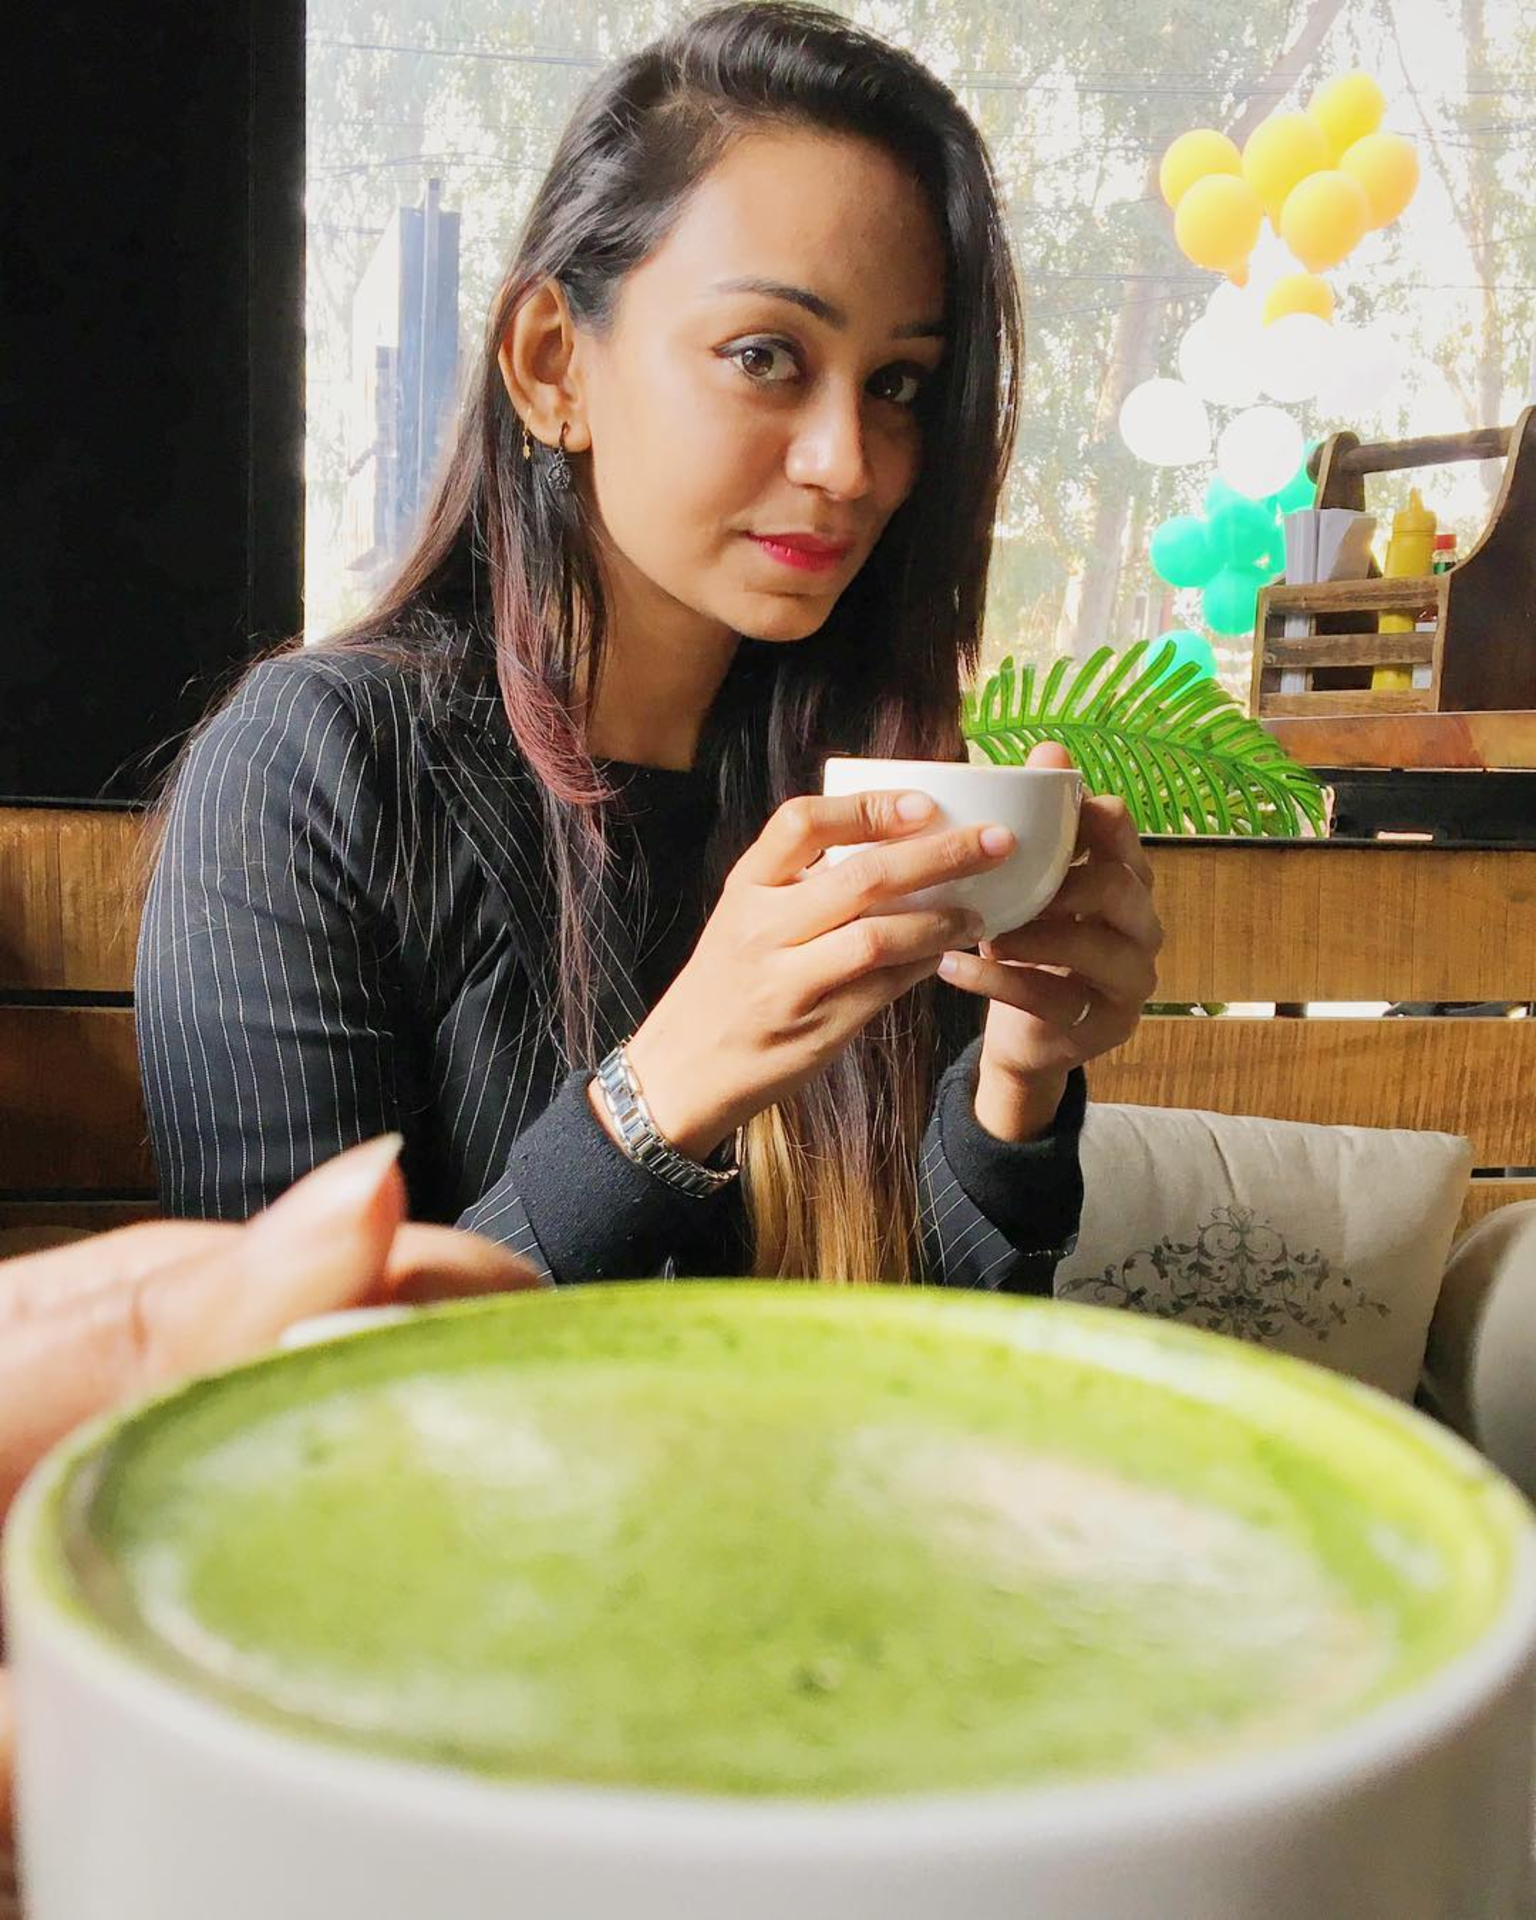 Sarah Zarein Raza - Japanese Macha Latte